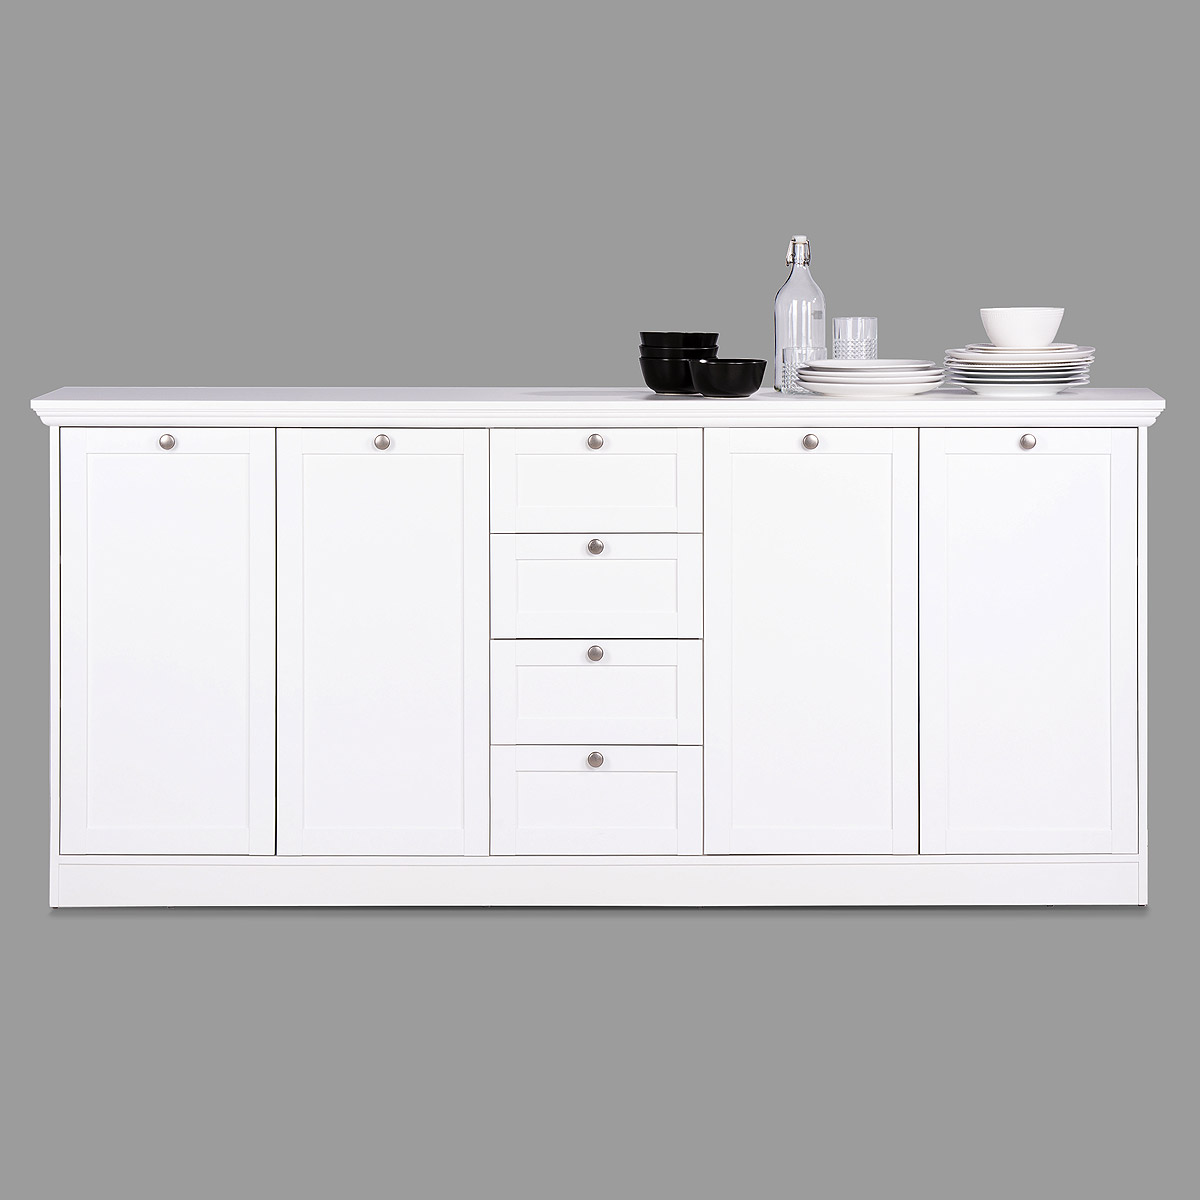 sideboard landwood 52 landhausstil anrichte kommode wei 4 t rig ebay. Black Bedroom Furniture Sets. Home Design Ideas